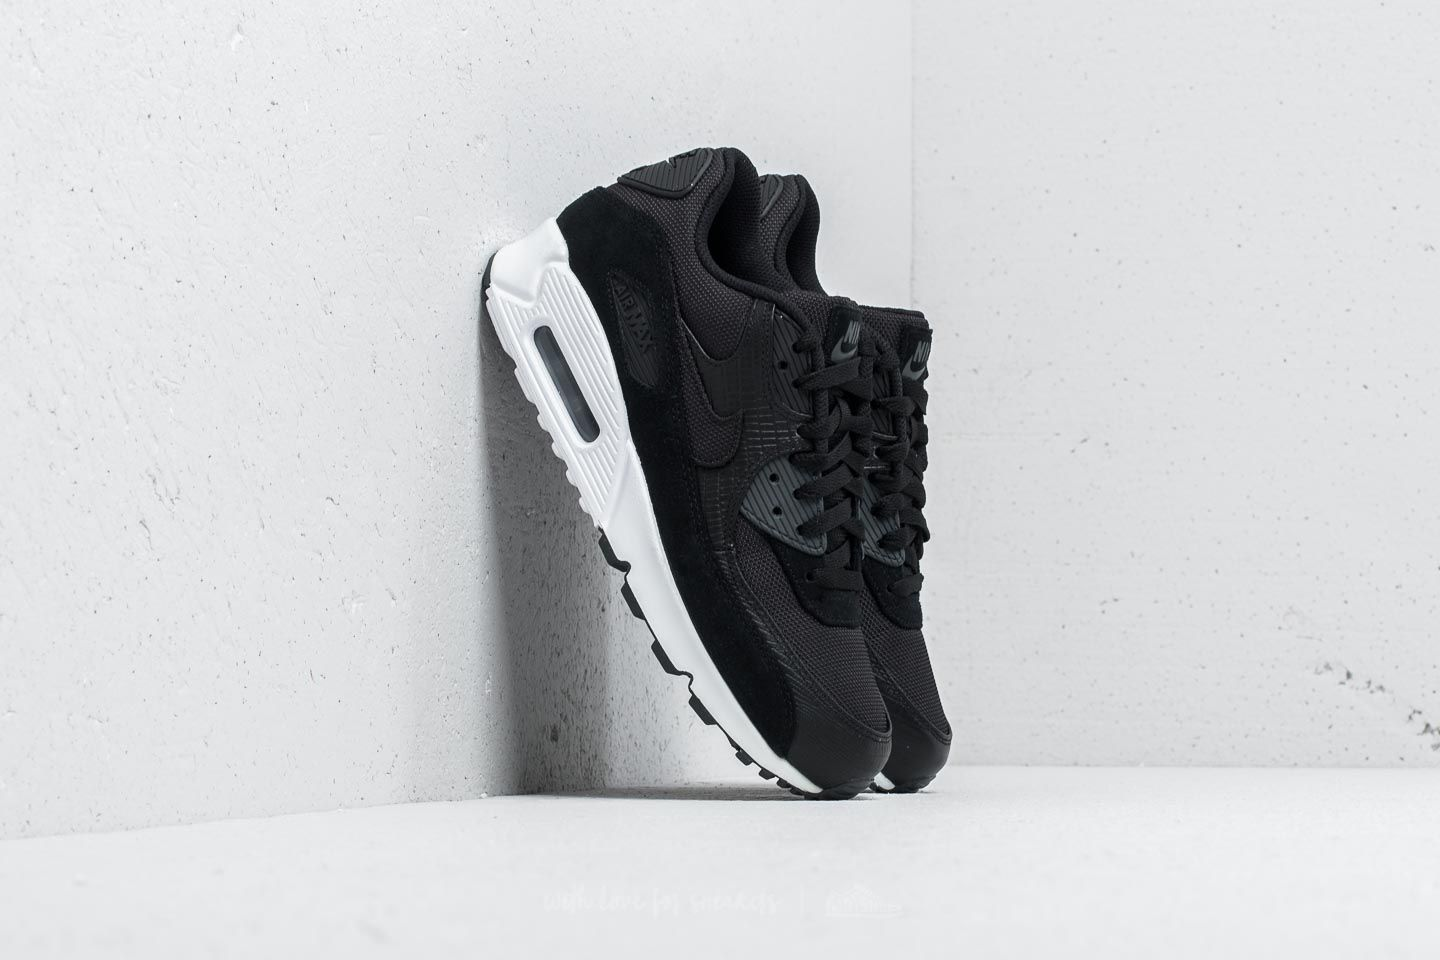 timeless design a86c8 b2d02 Nike Air Max 90 Premium. Black  Black-White-Anthracite